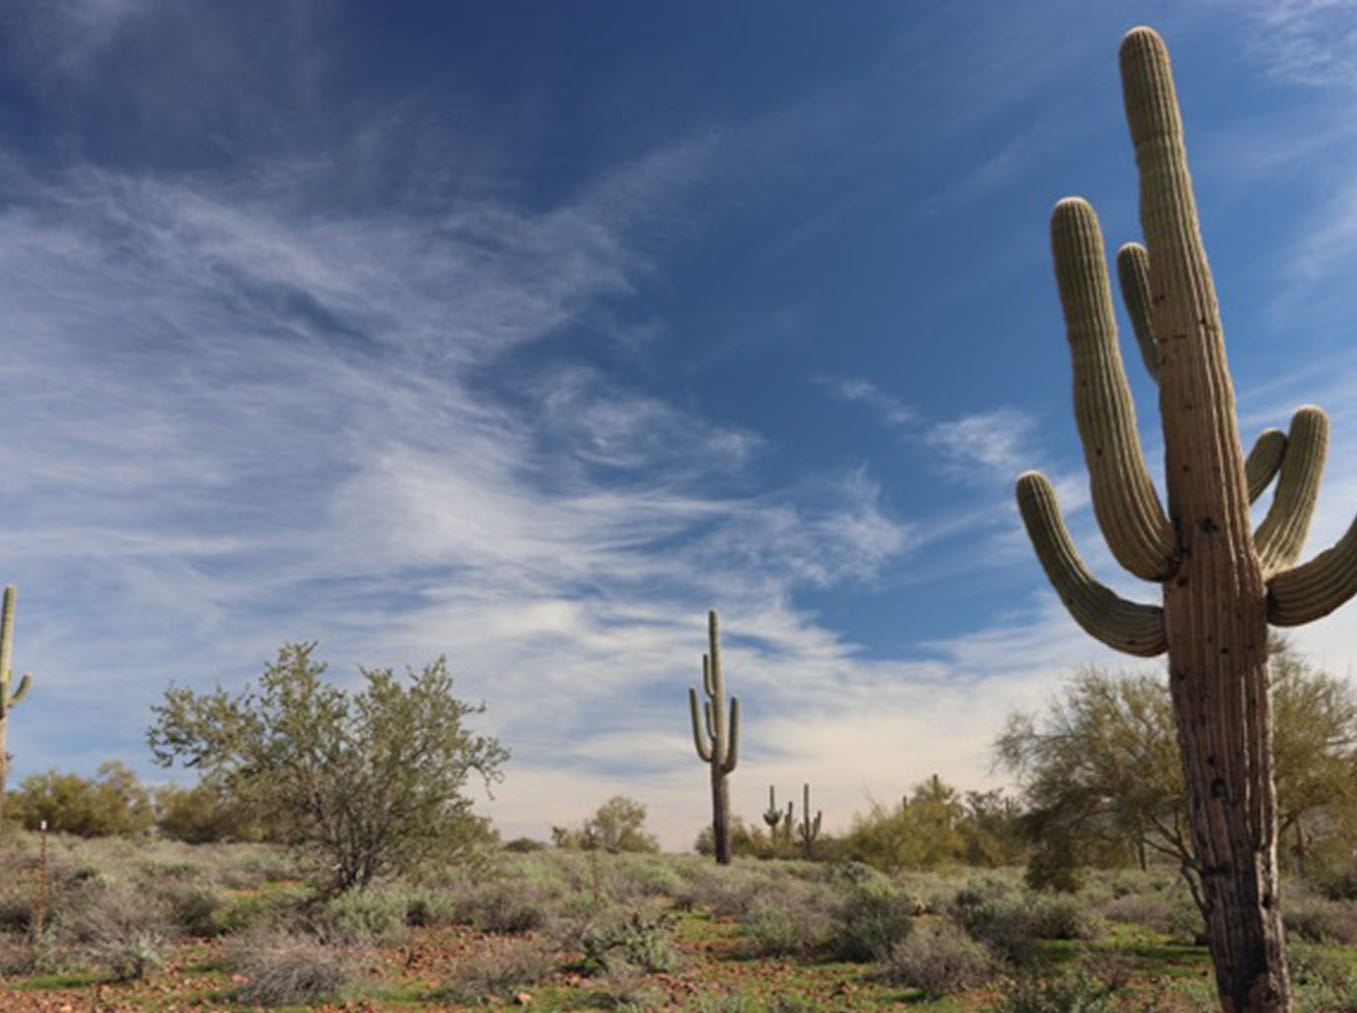 Superstition mountain museum grounds, the leaning Saguaros against the expressive sky, evoked feelings of the west.